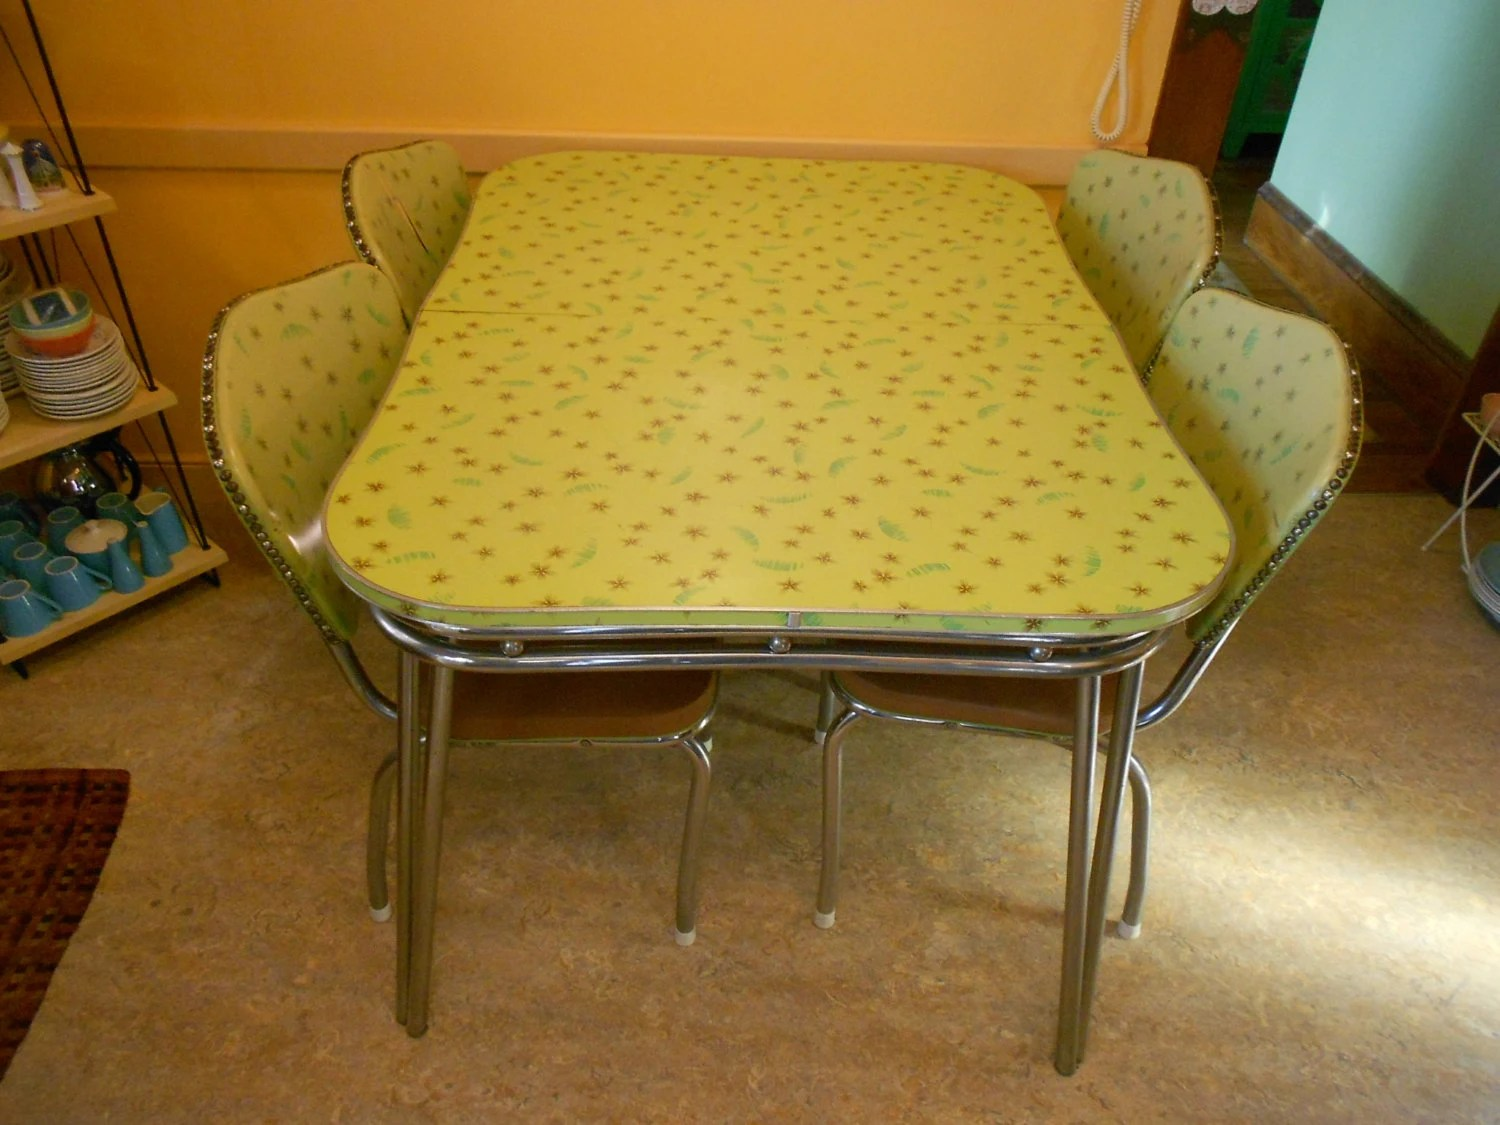 1950 s yellow formica table and chairs nautical desk chair vintage 39s kitchen set retro chrome